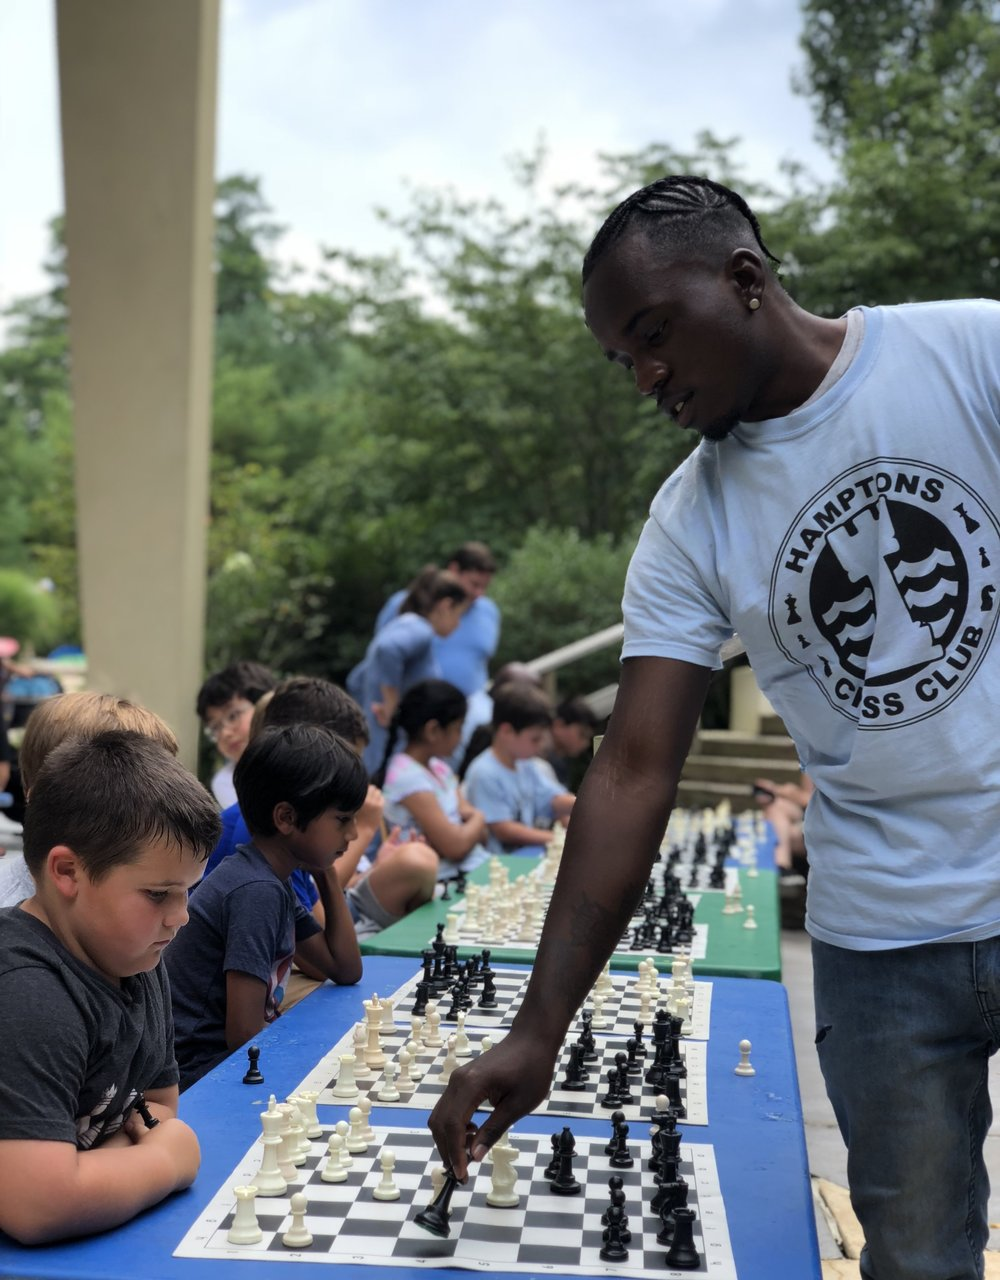 Hamptons Chess